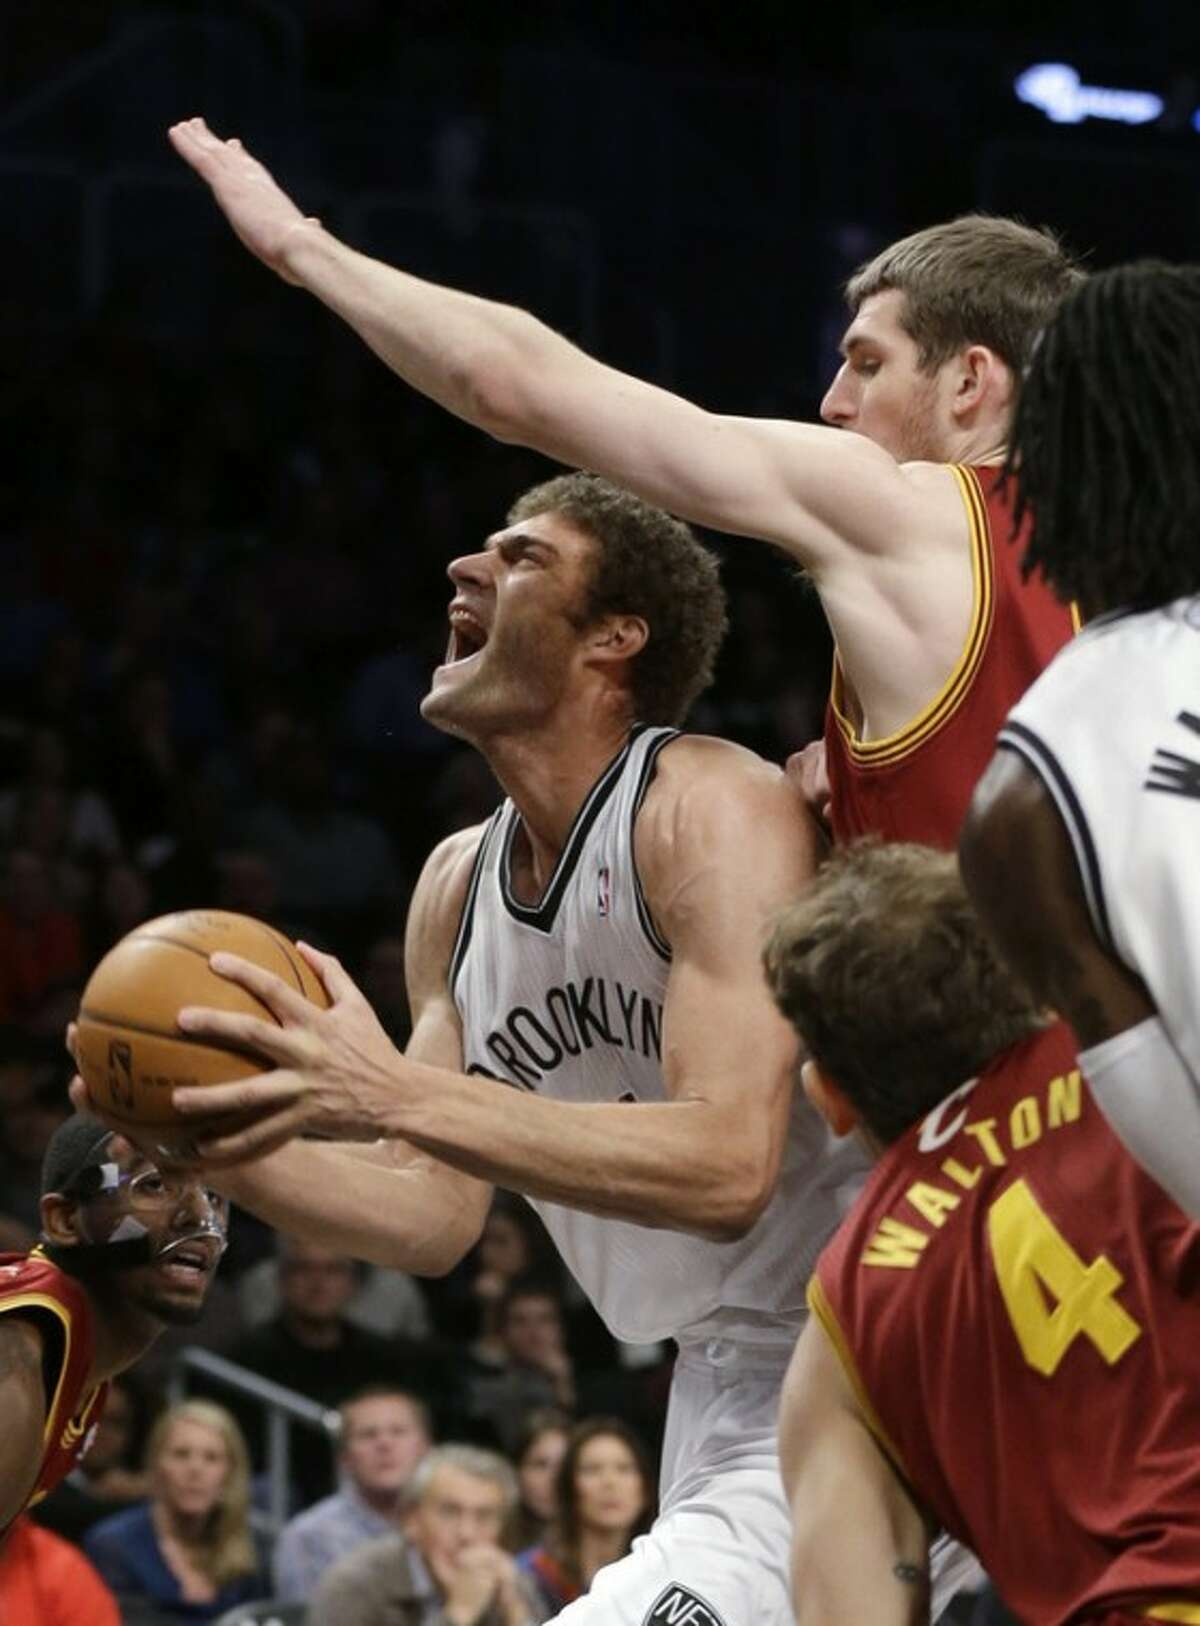 Brooklyn Nets' Brook Lopez drives past Cleveland Cavaliers' Tyler Zeller, top right, during the first half of an NBA basketball game Saturday, Dec. 29, 2012, in New York. (AP Photo/Frank Franklin II)